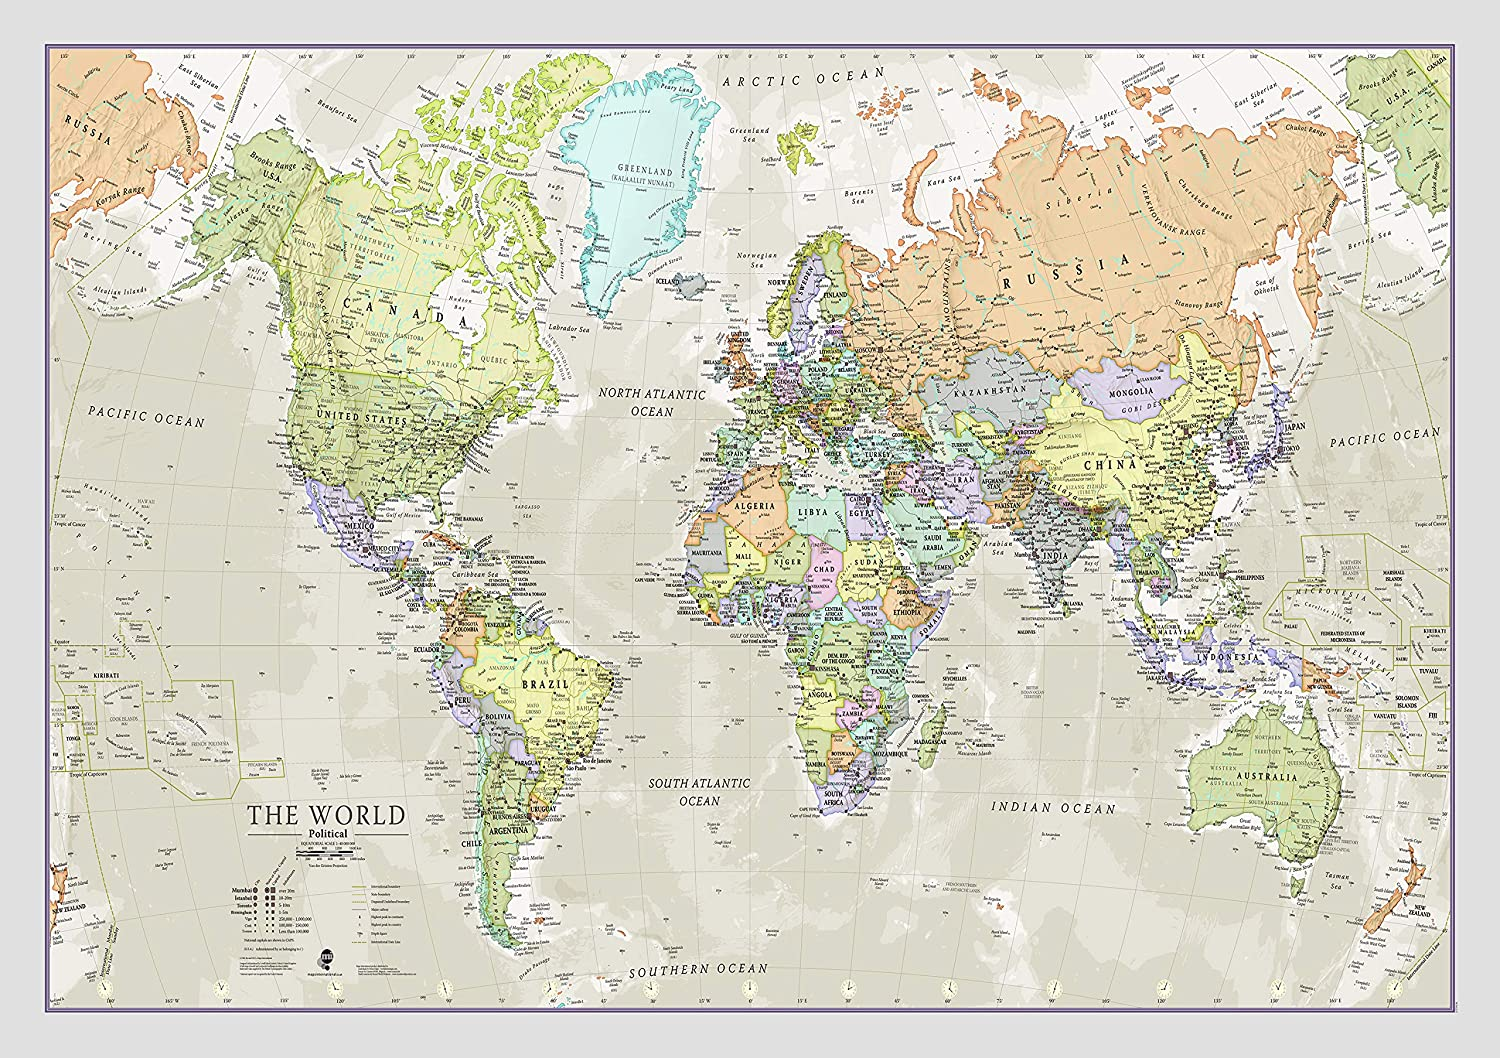 World Map Classic Style - Front Sheet Lamination - Cartographic Detail (A1 23 (h) x 33 (w) inches)